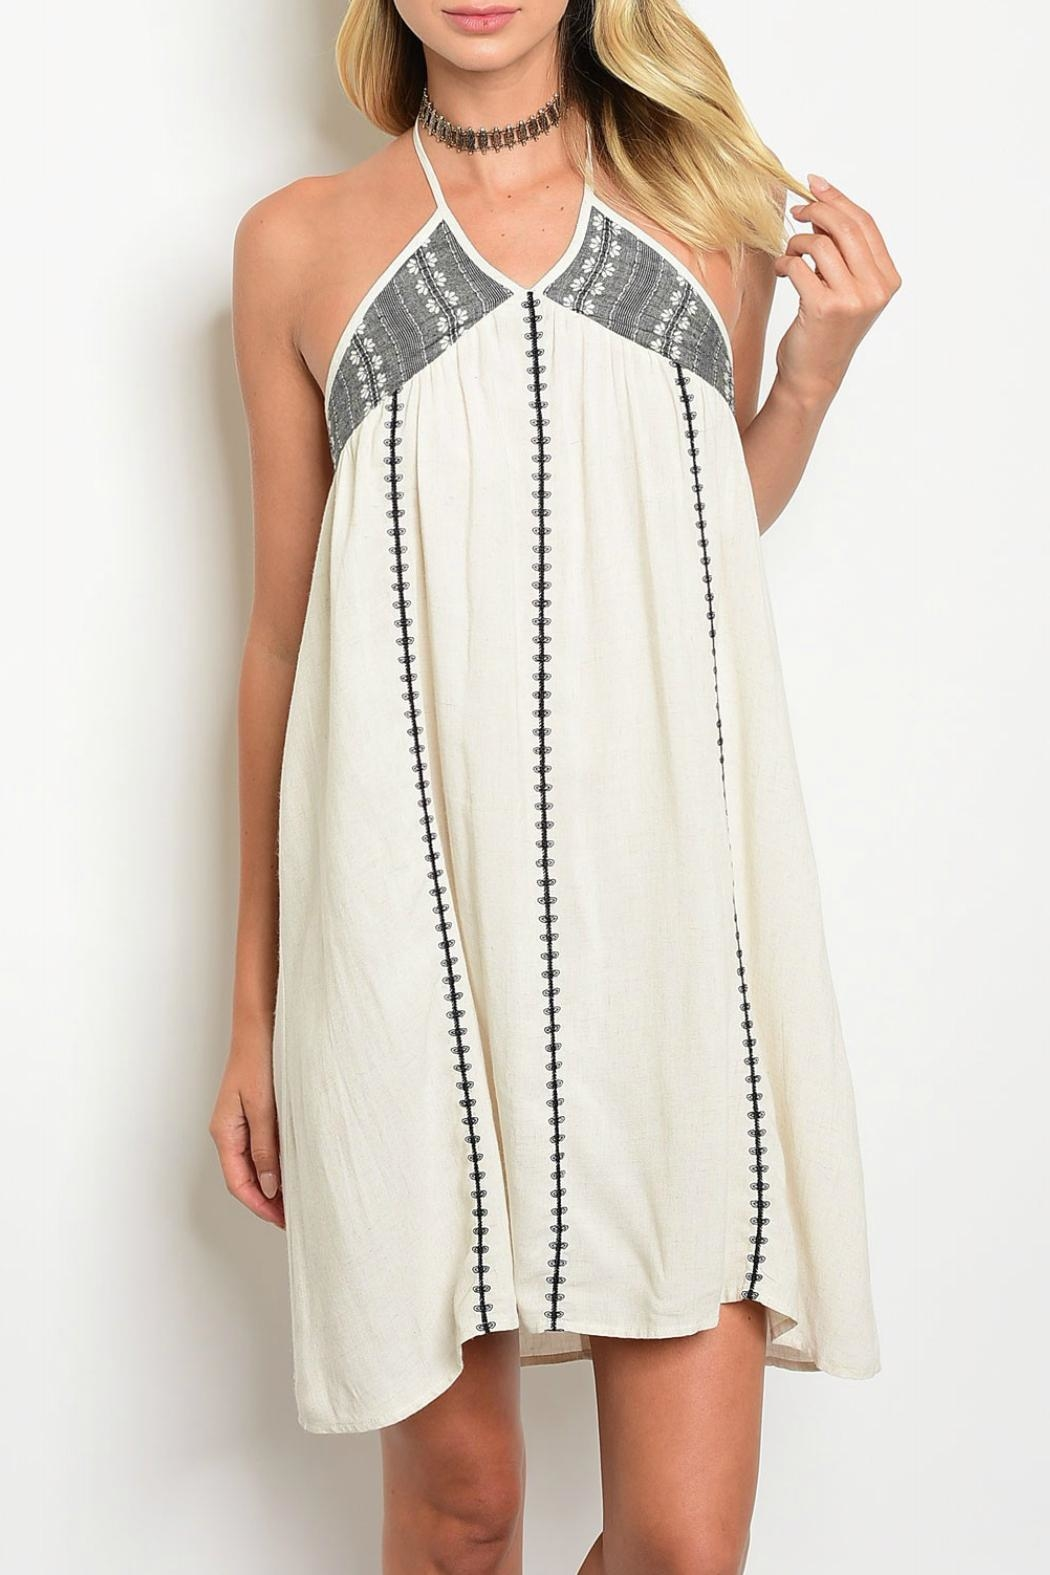 Illa Illa Skye Halter Dress - Main Image